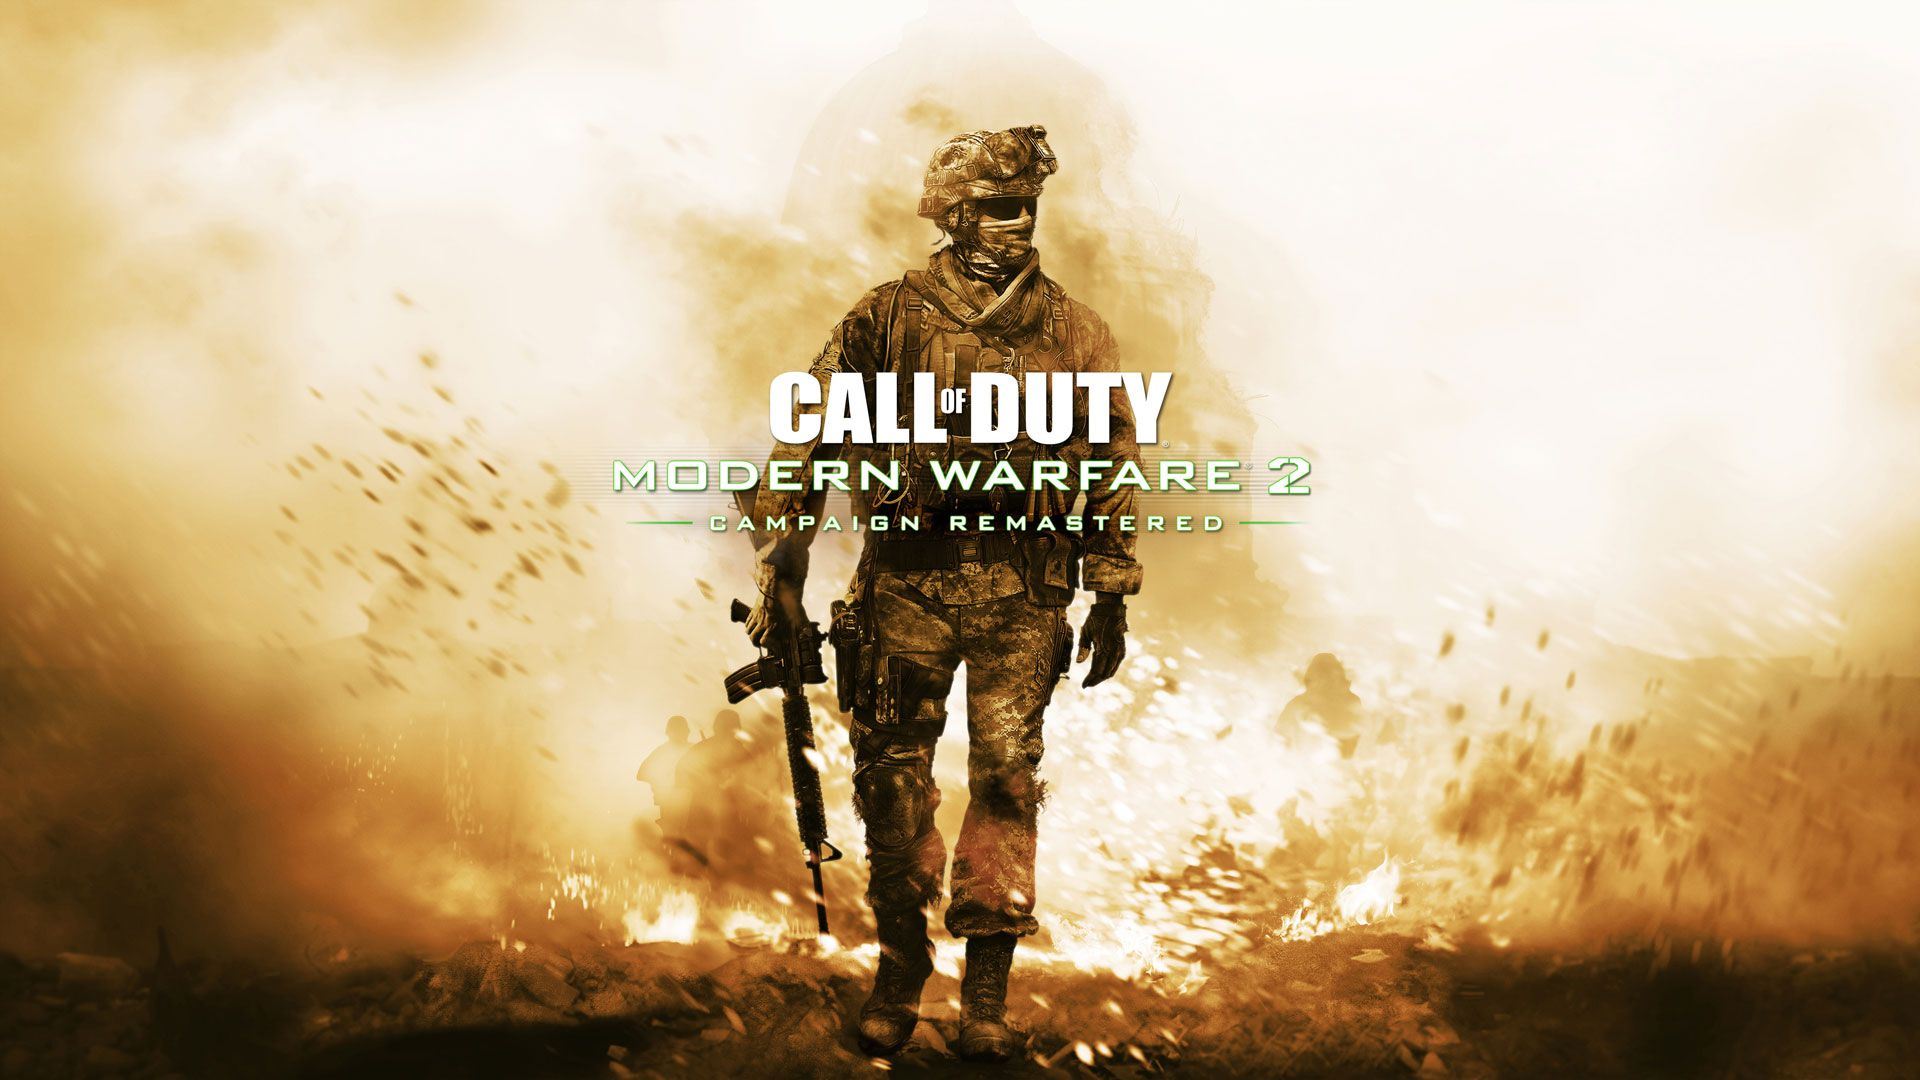 Campaña Remasterizada de Call of Duty Modern Warfare 2